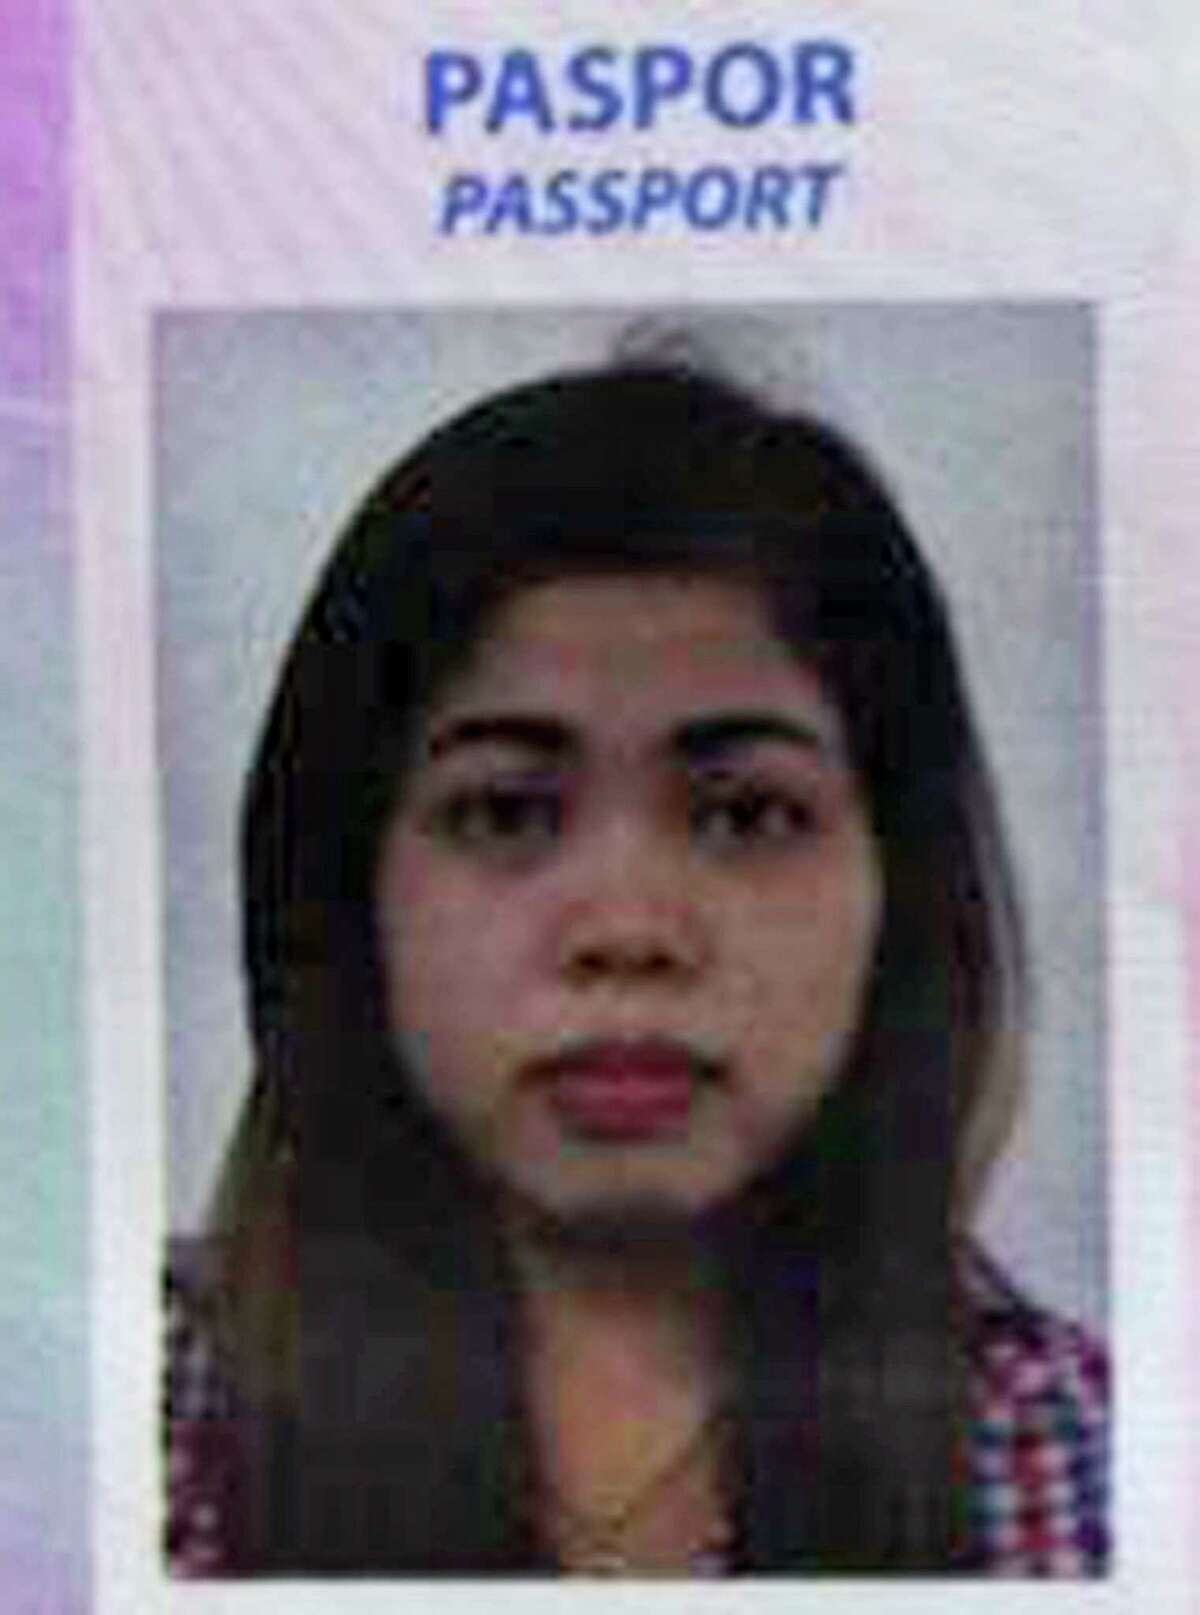 This photo from Indonesian news portal Kumparan obtained on Thursday, Feb. 16, 2017 shows the portrait on the passport of Siti Aisyah, 25, an Indonesian woman suspected to be involved in the killing of the North Korean leader's half brother at Kuala Lumpur Airport on Monday, Feb. 13. Indonesian diplomats in Malaysia have met with the woman and confirmed she is an Indonesian citizen, officials said Thursday.